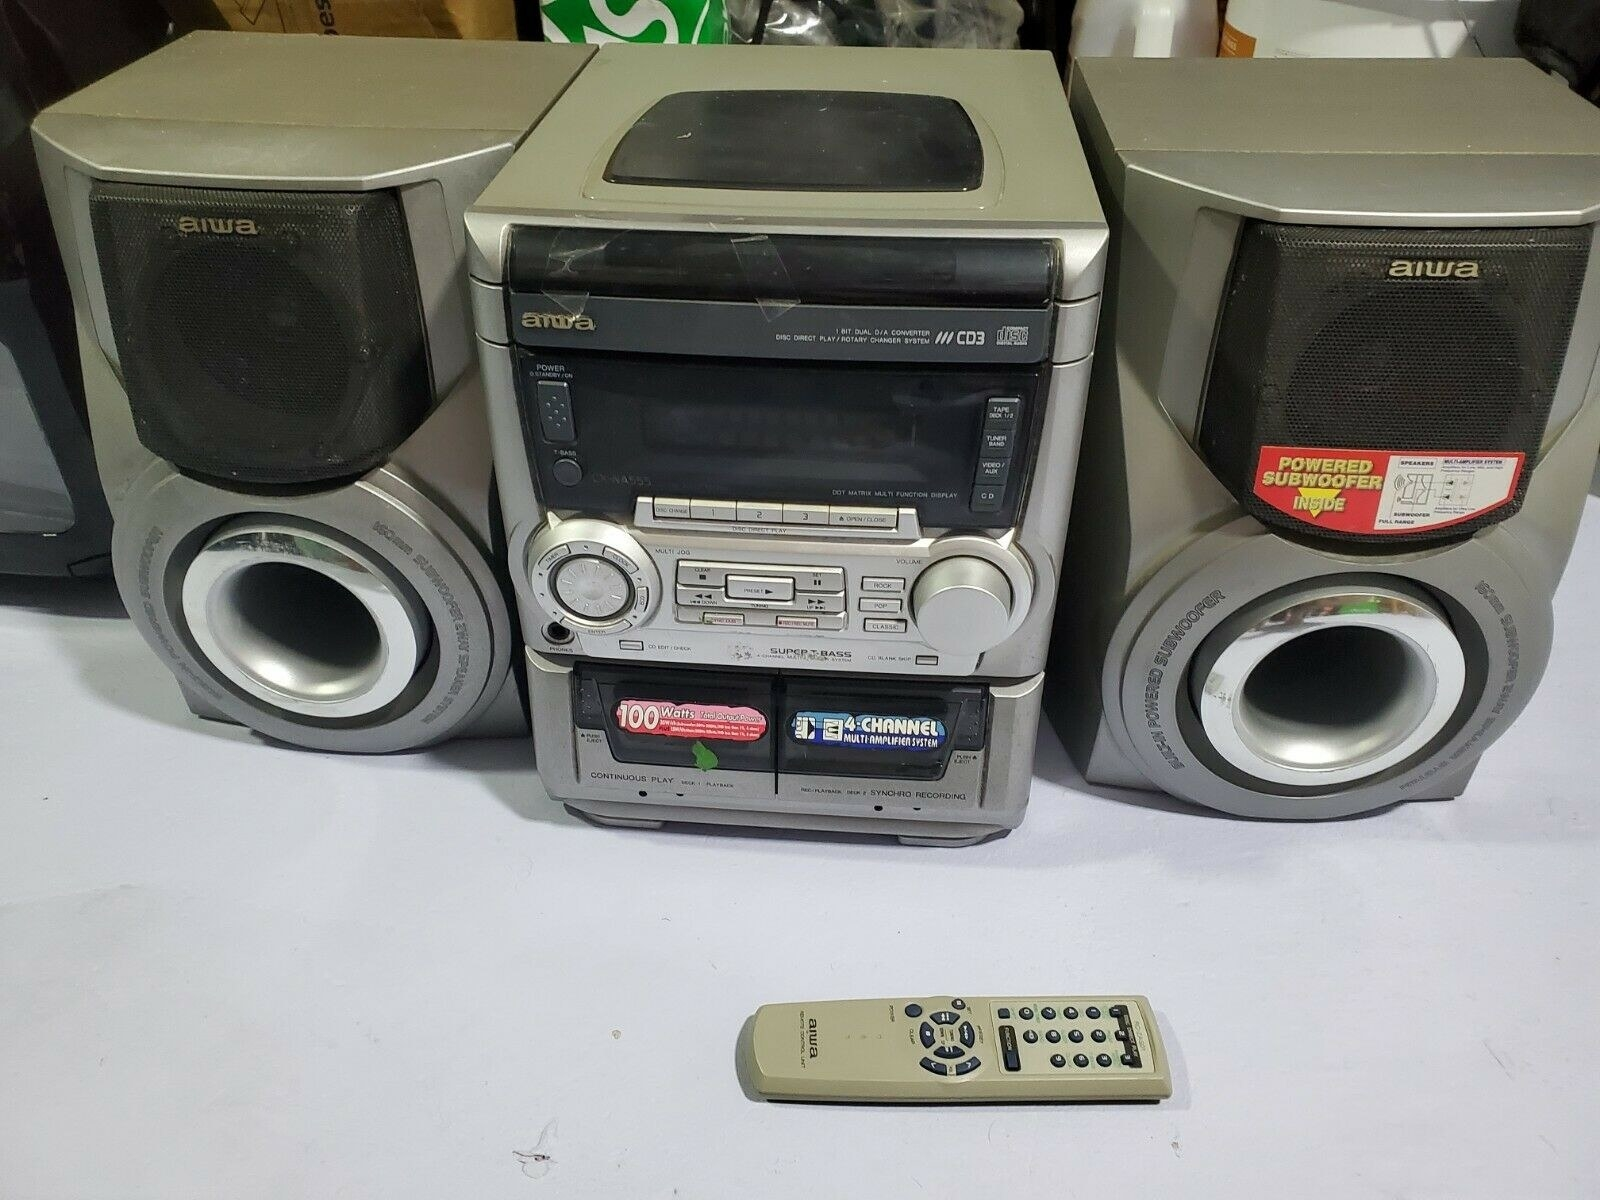 A 3-CD boombox with a remote next to it